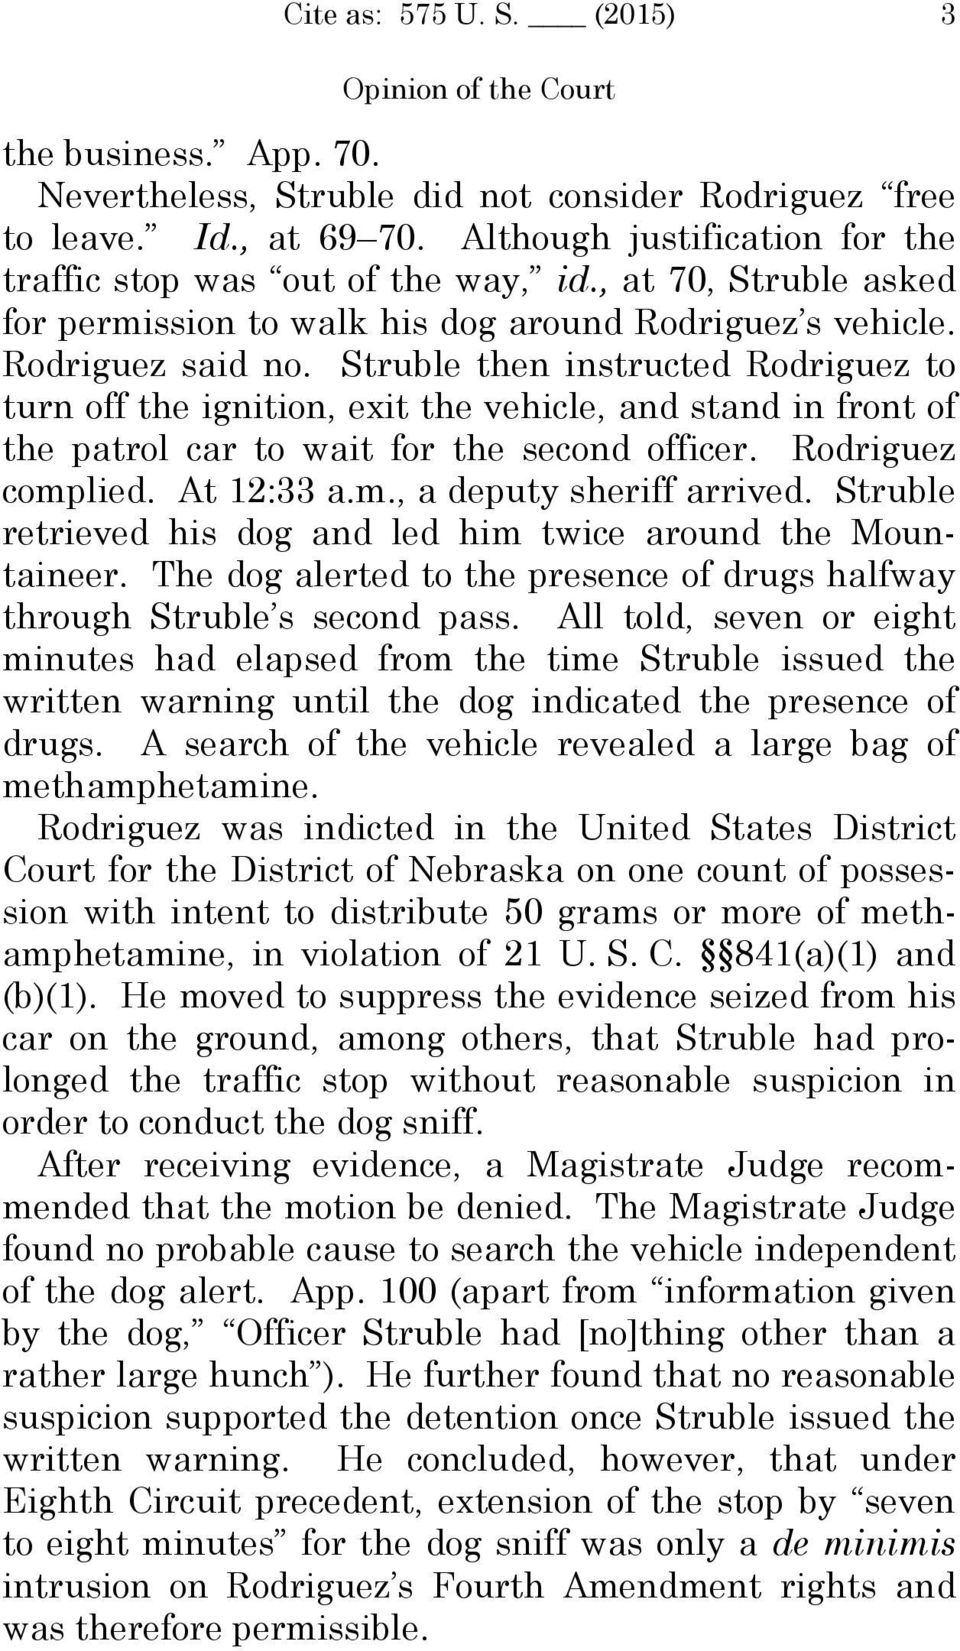 Struble then instructed Rodriguez to turn off the ignition, exit the vehicle, and stand in front of the patrol car to wait for the second officer. Rodriguez complied. At 12:33 a.m., a deputy sheriff arrived.